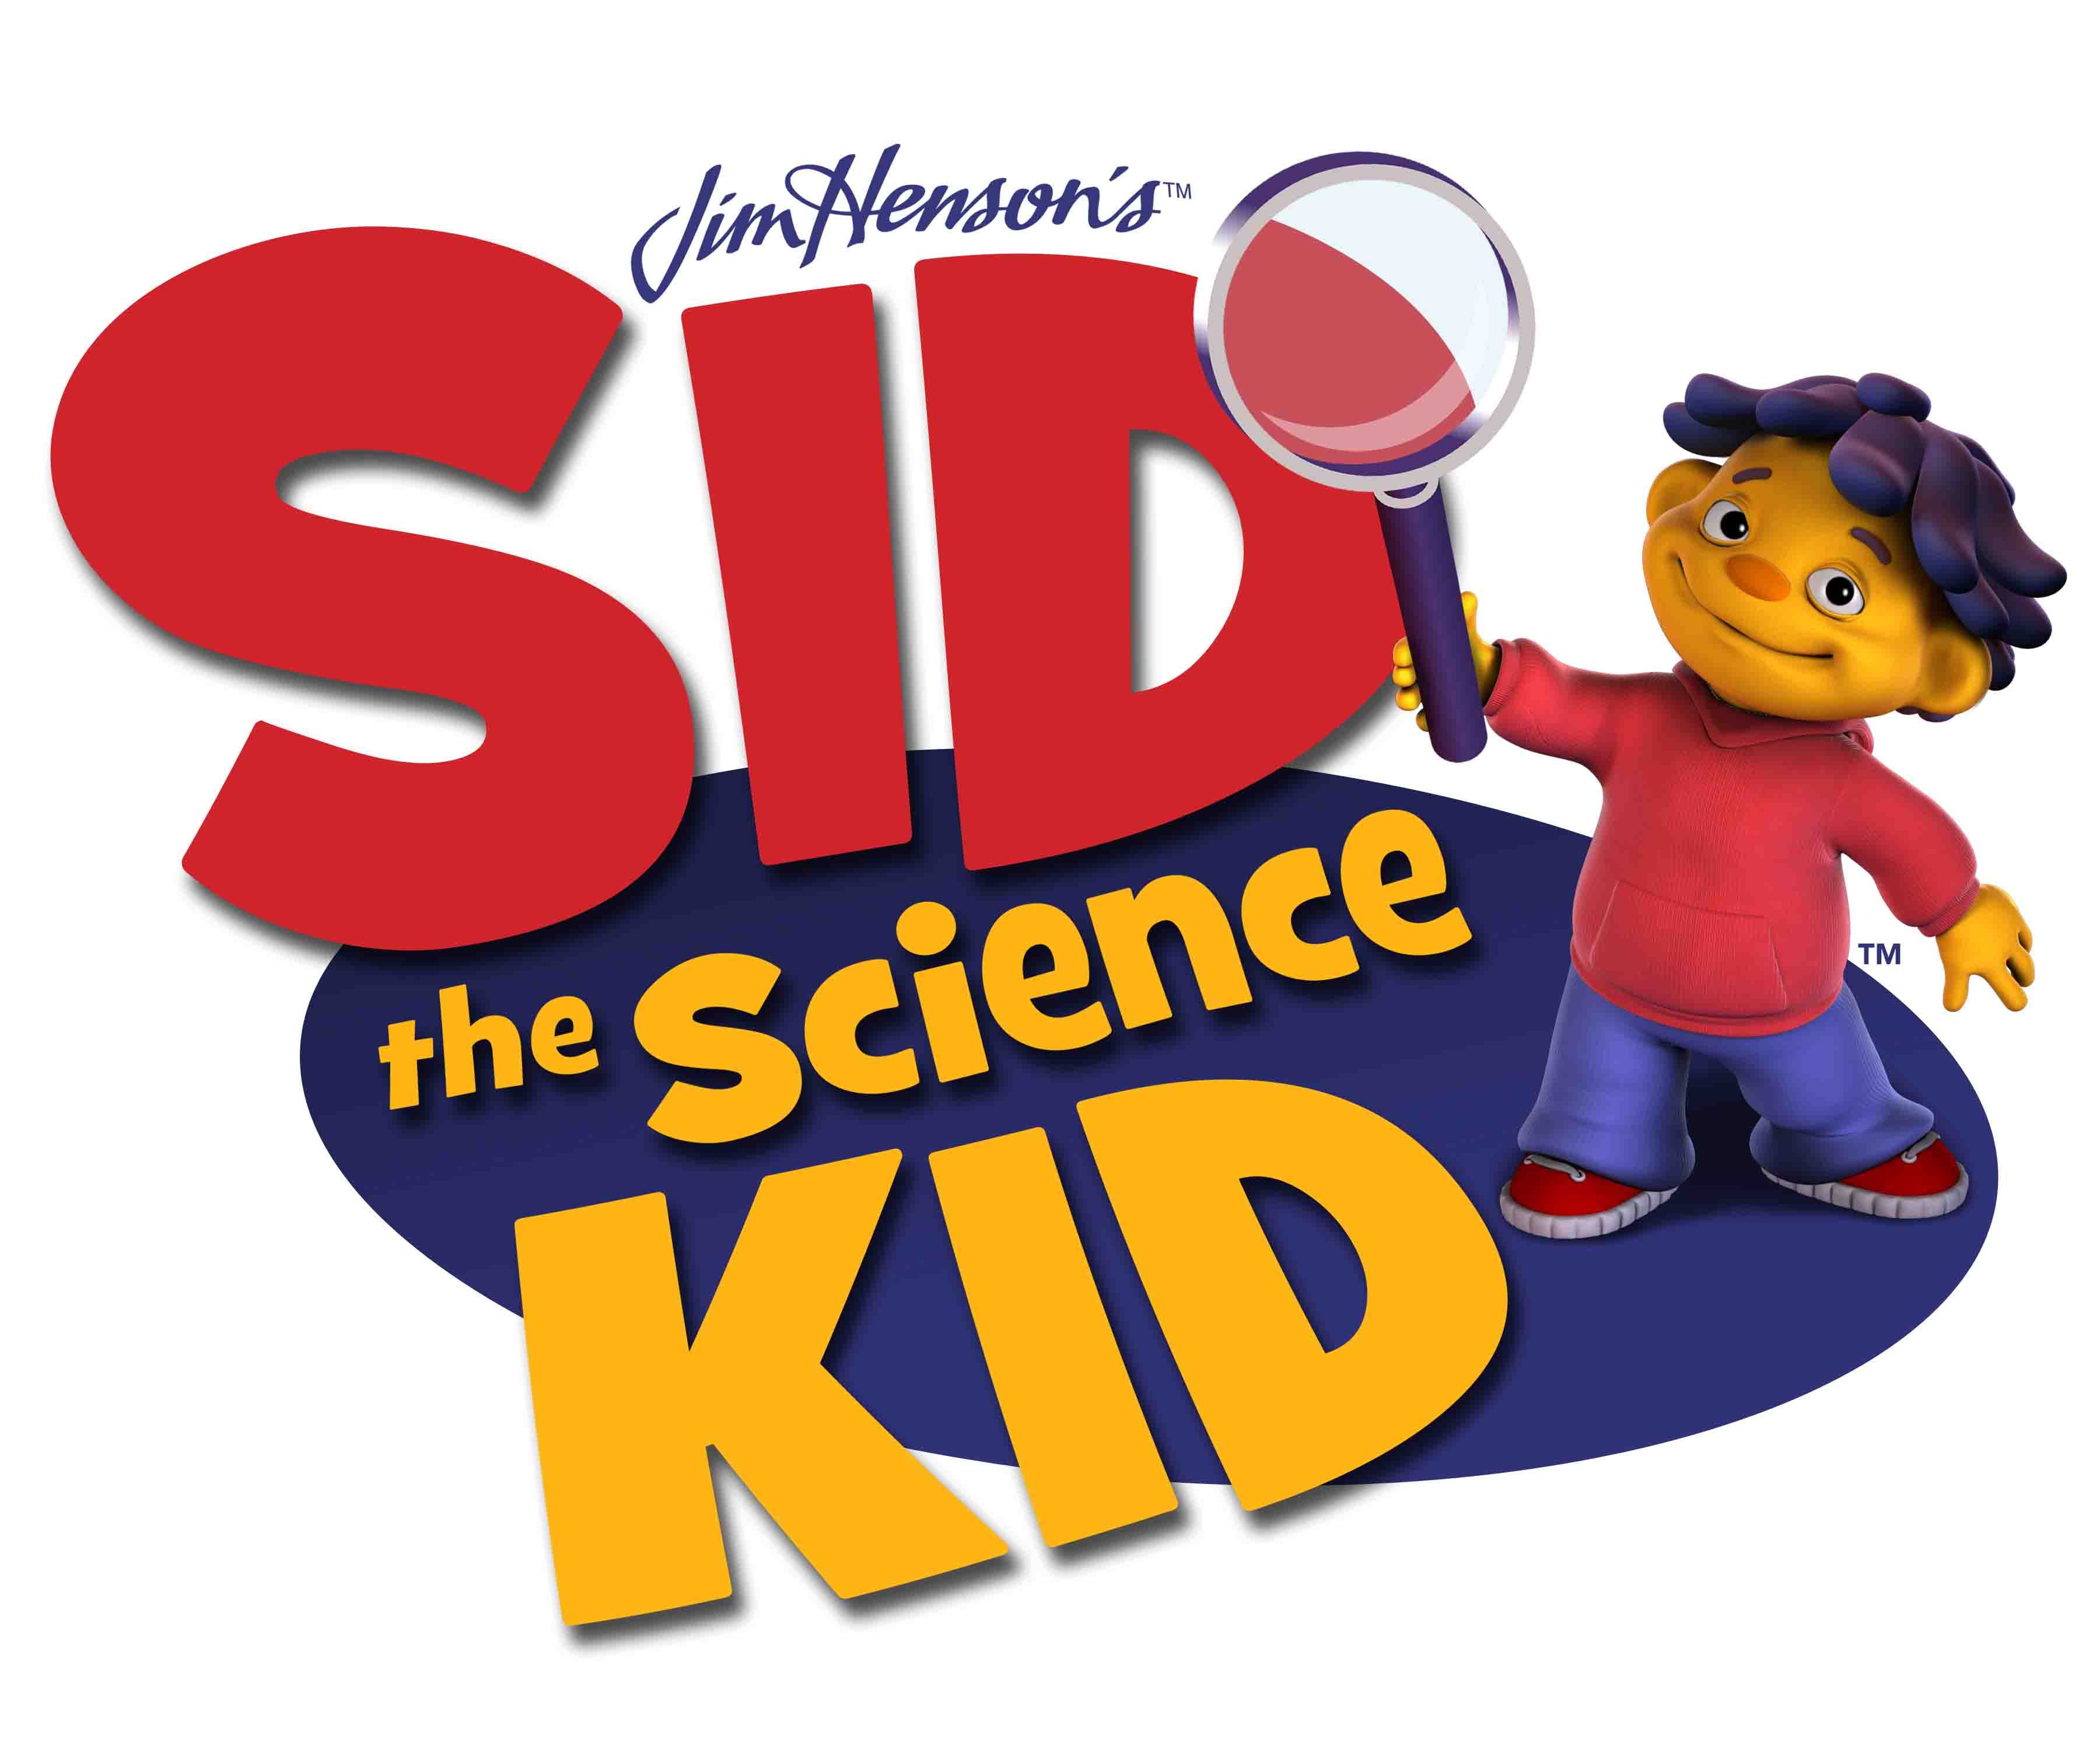 sid science kid pbs movie baby cartoon play its wings animal learn room young gravy explain experiments tweet haven tree